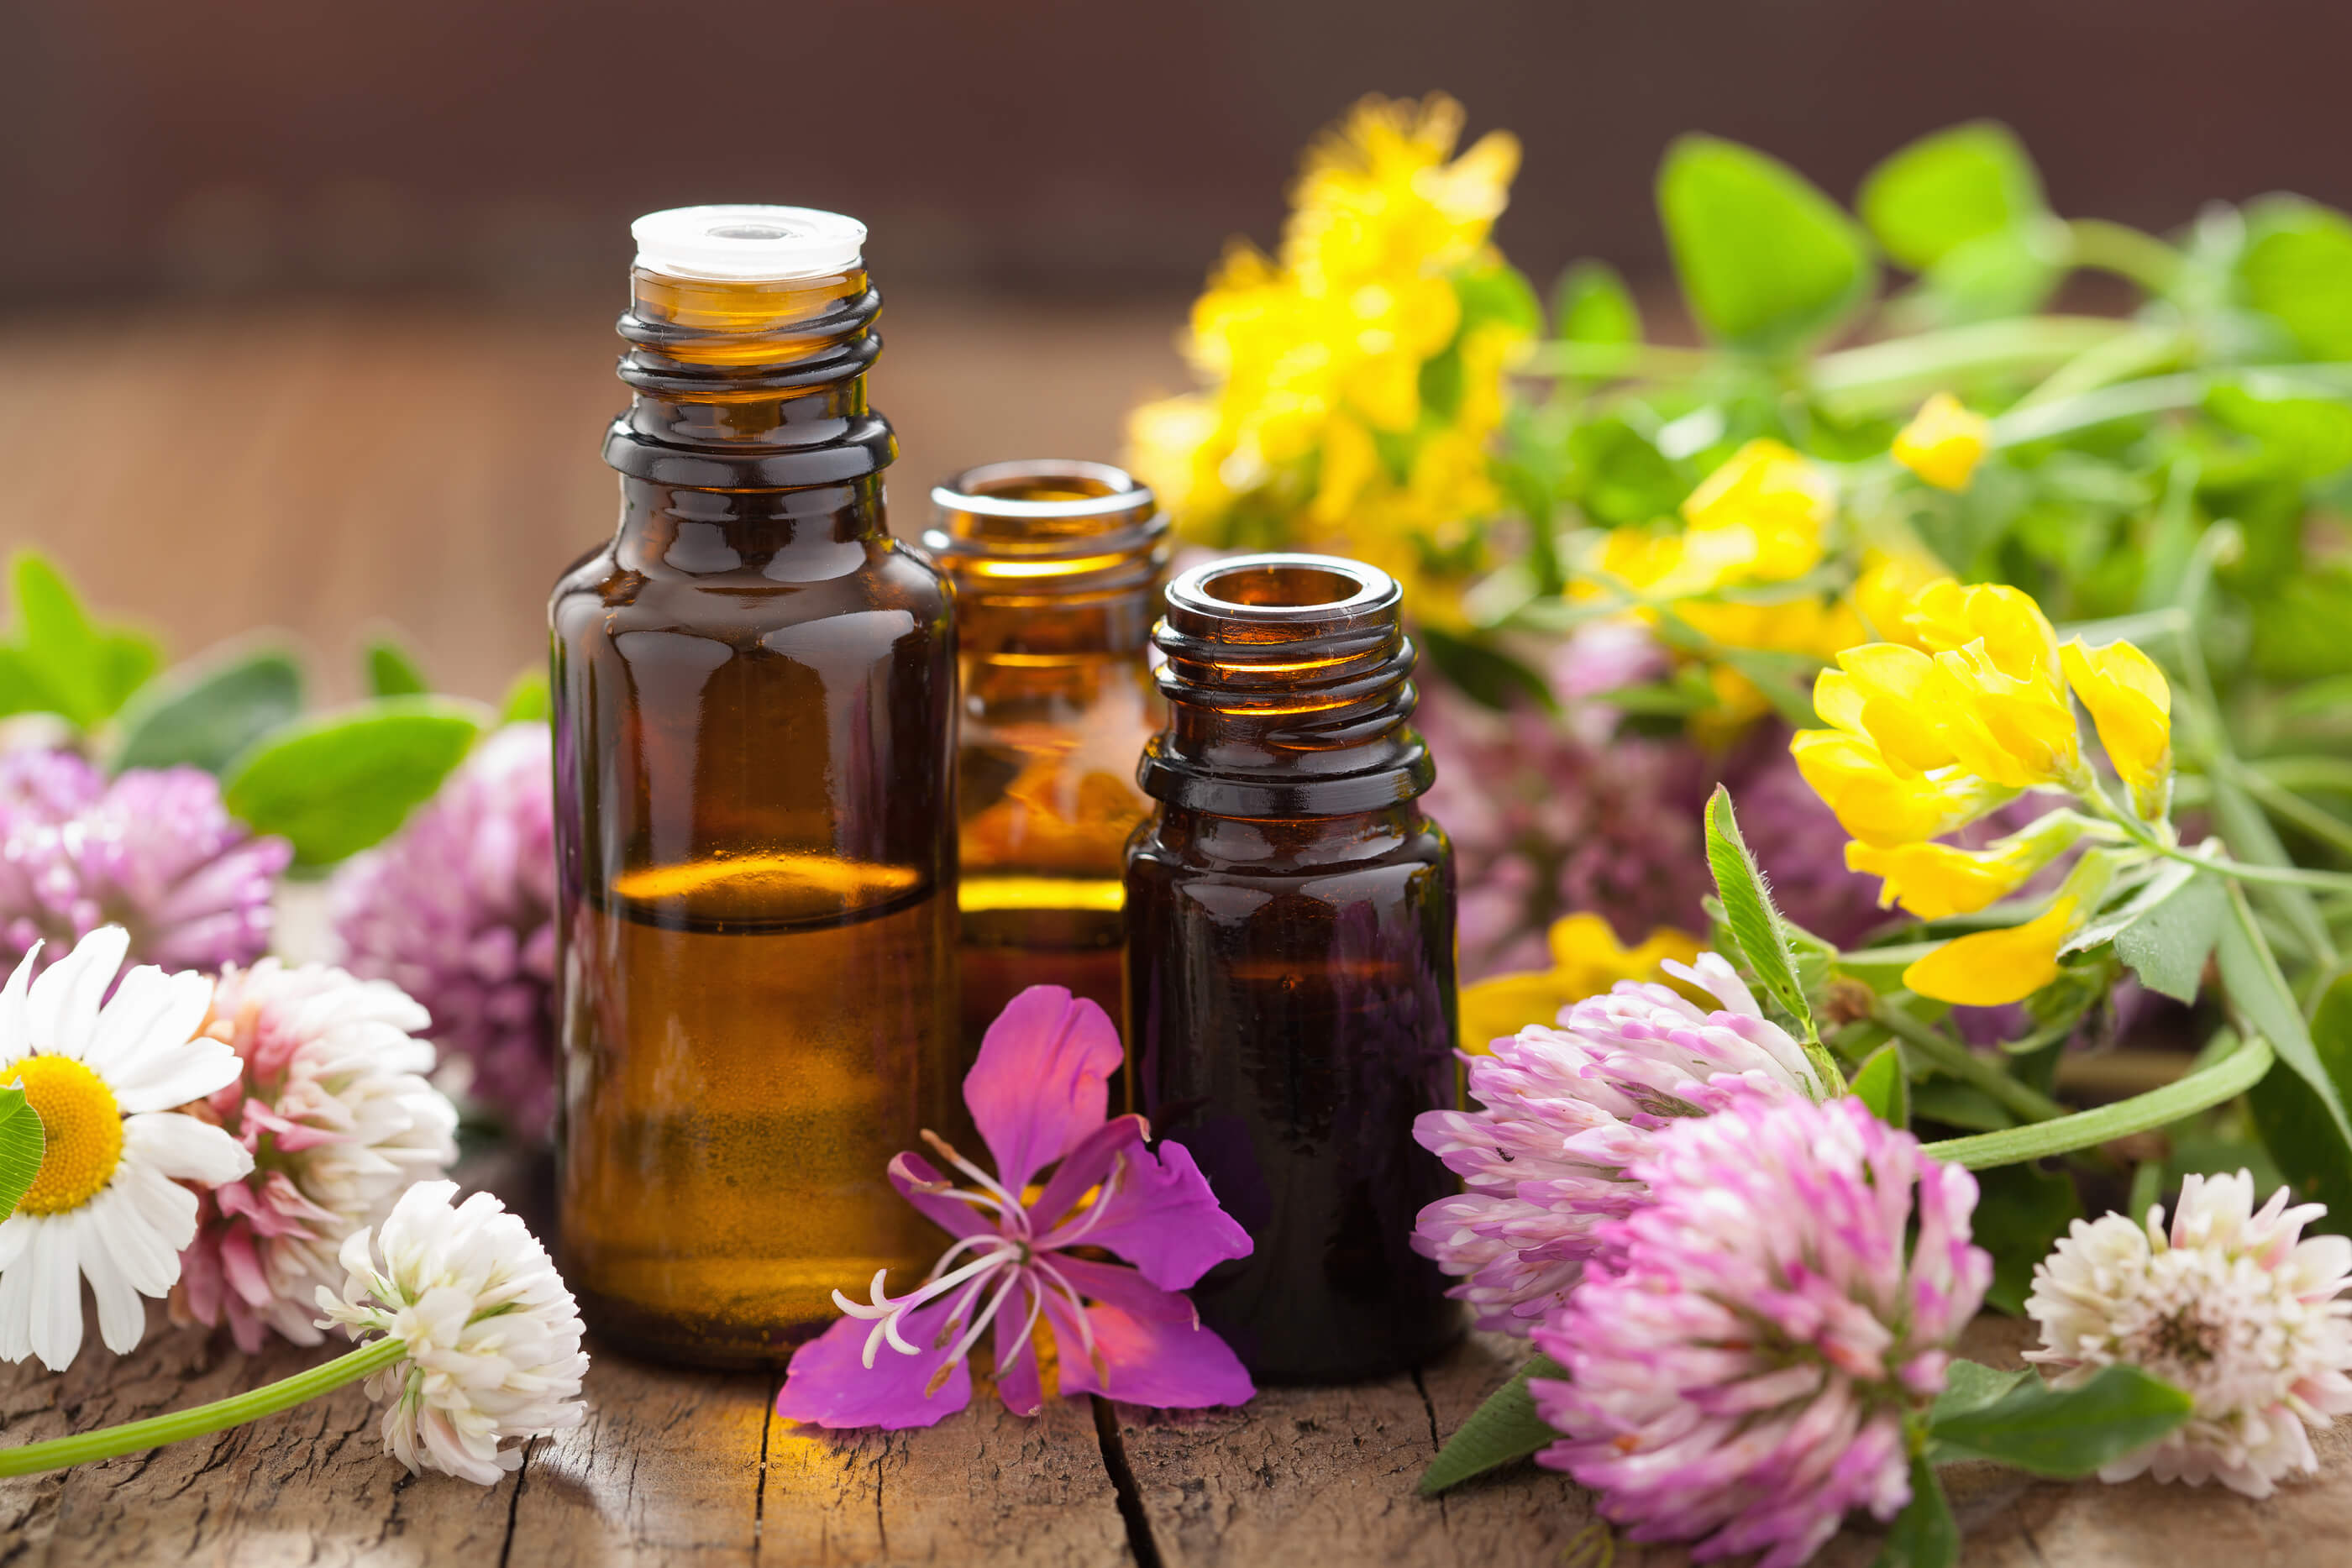 bigstock-essential-oils-and-medical-flo-68243479-1